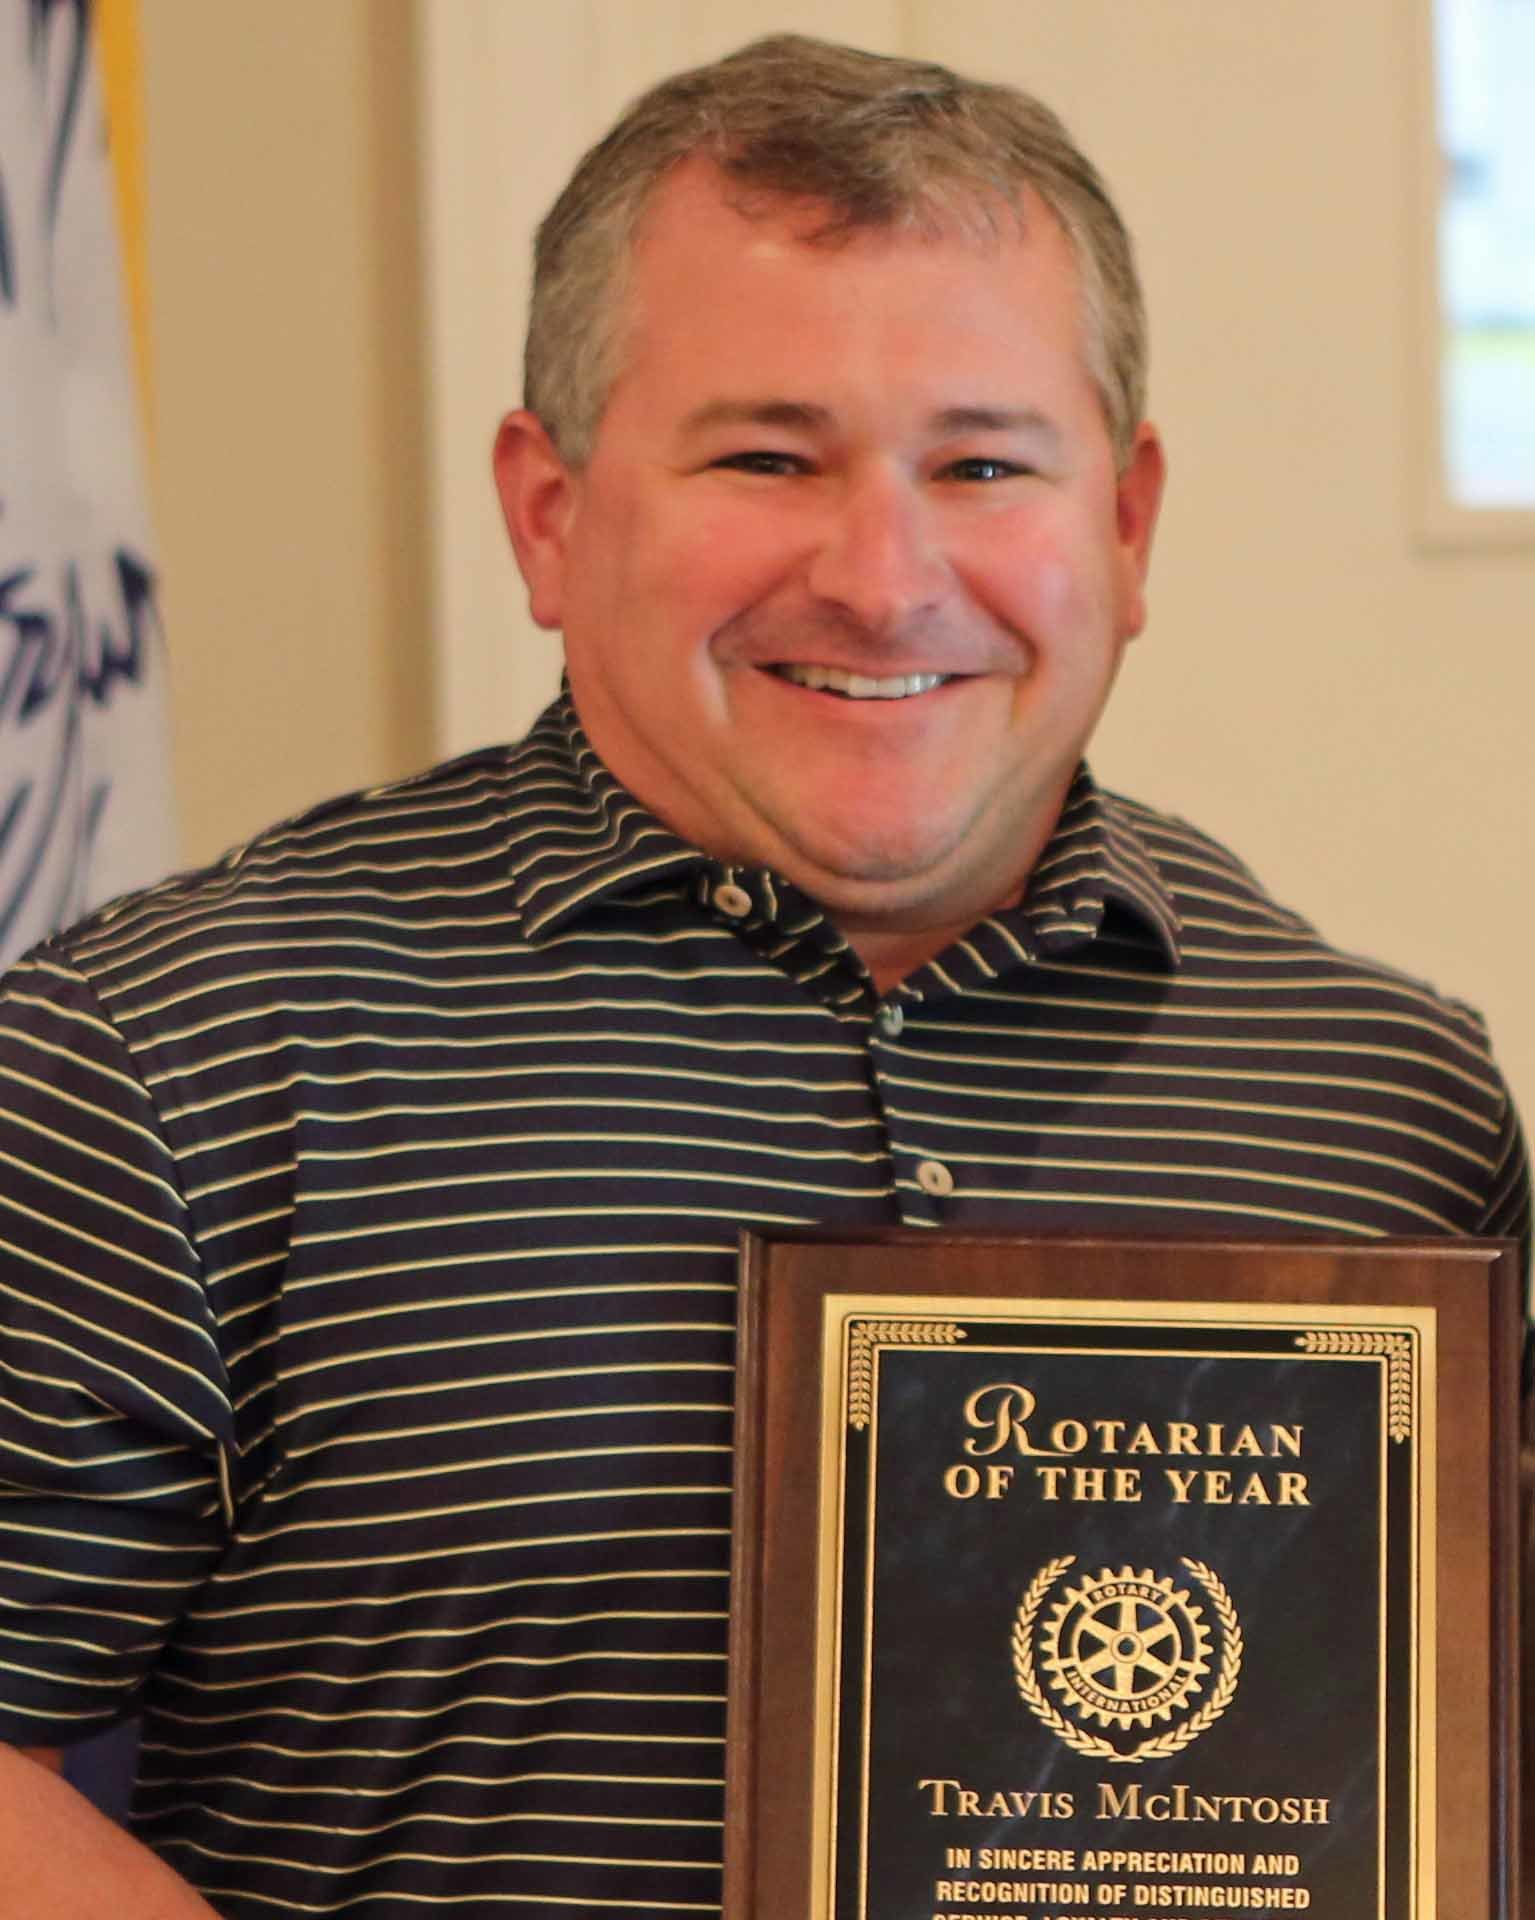 PHOTOS PROVIDEDTravis McIntosh was honored with the Rotarian of the Year award at the Sumter Rotary Club meeting on Monday.